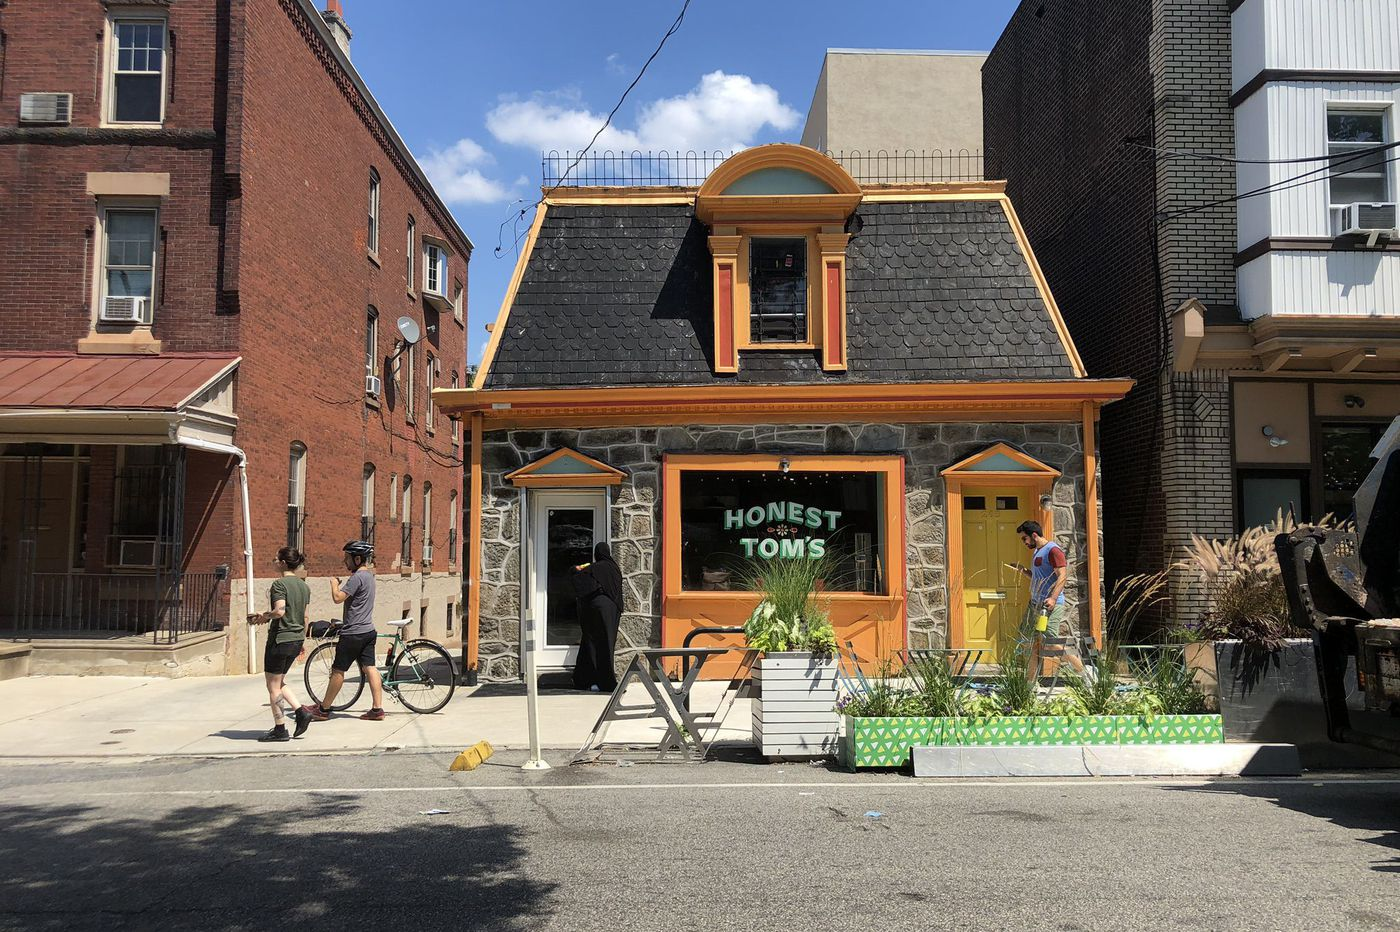 These adorable one-room buildings survived decades of change in West Philadelphia